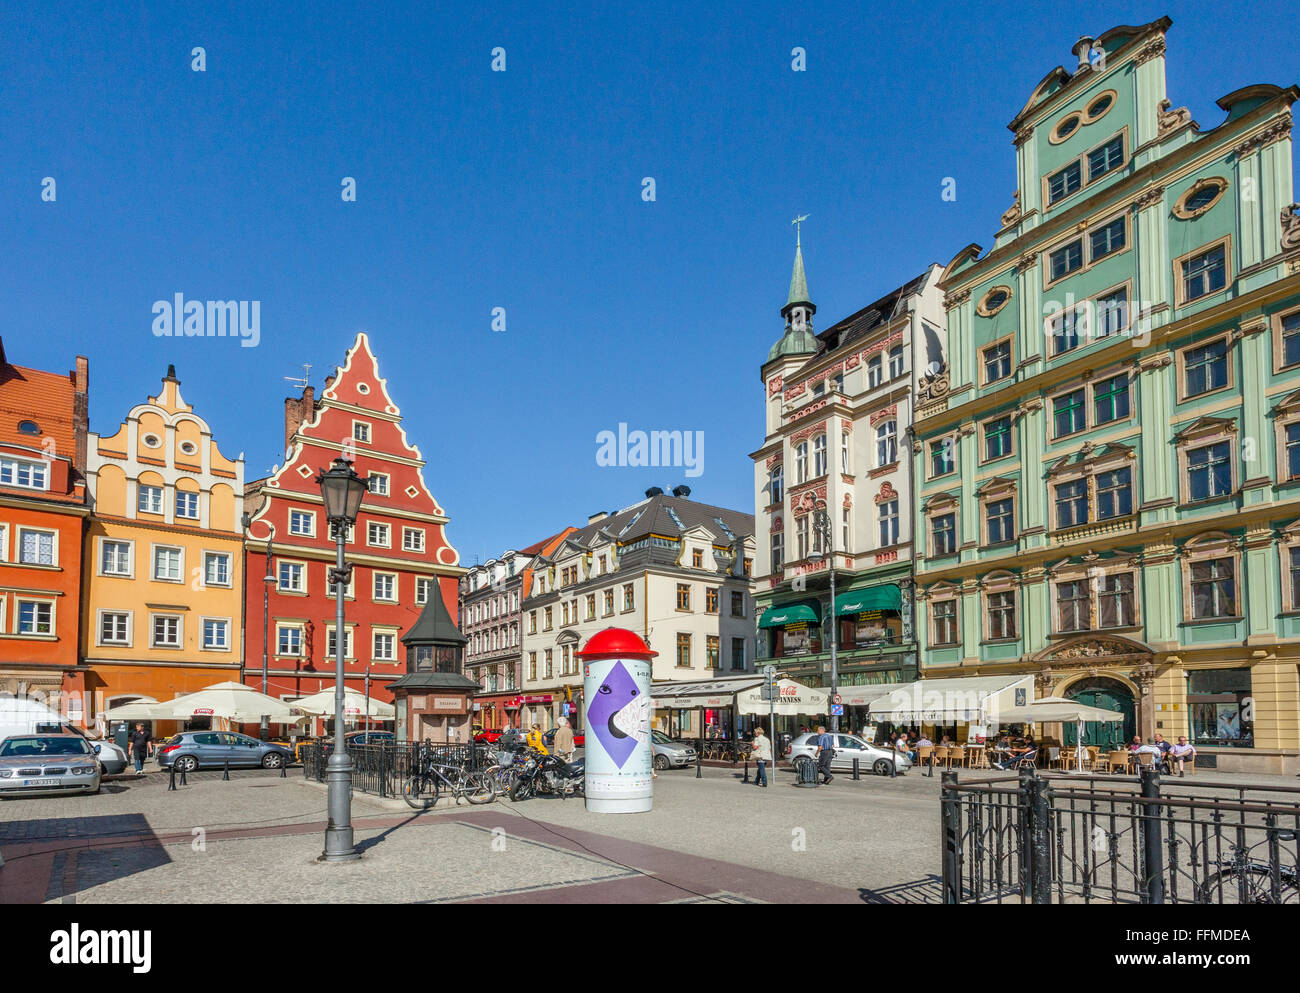 Poland, Lower Silesia, Wroclaw (Breslau), patrician houses at Salt Market Square - Stock Image